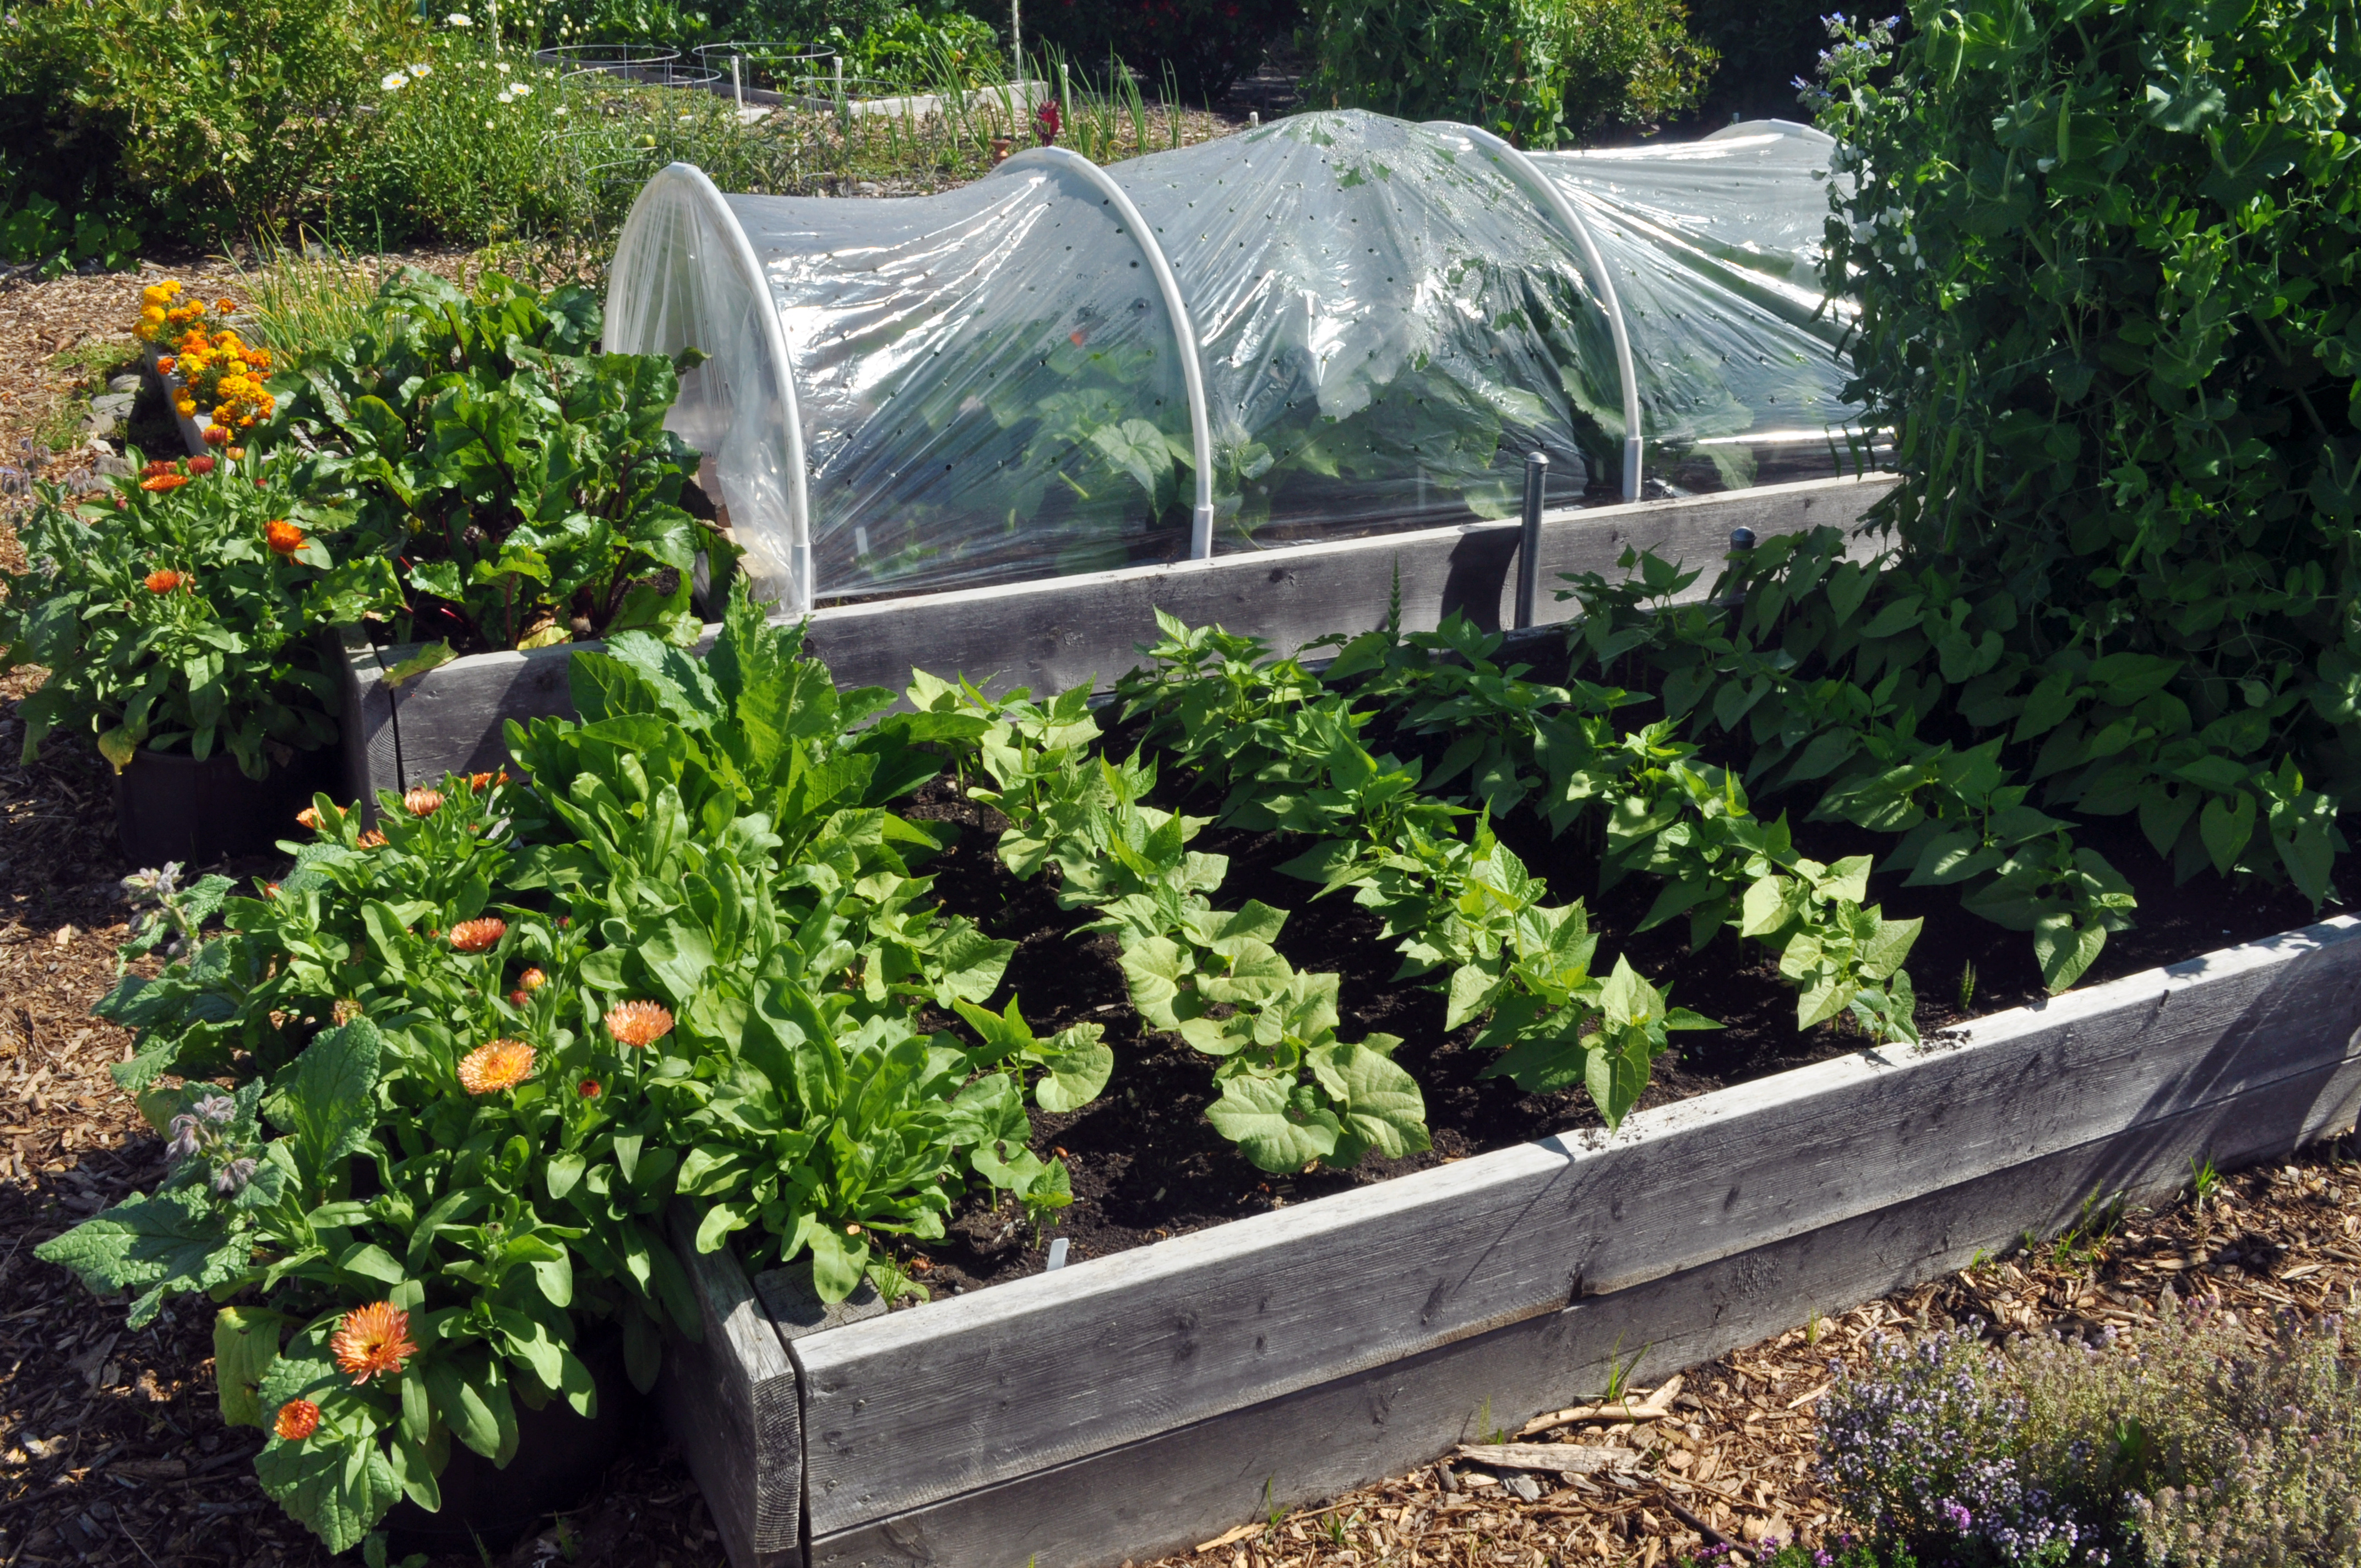 P Patch Vegetable Gardening Our Family S Experience